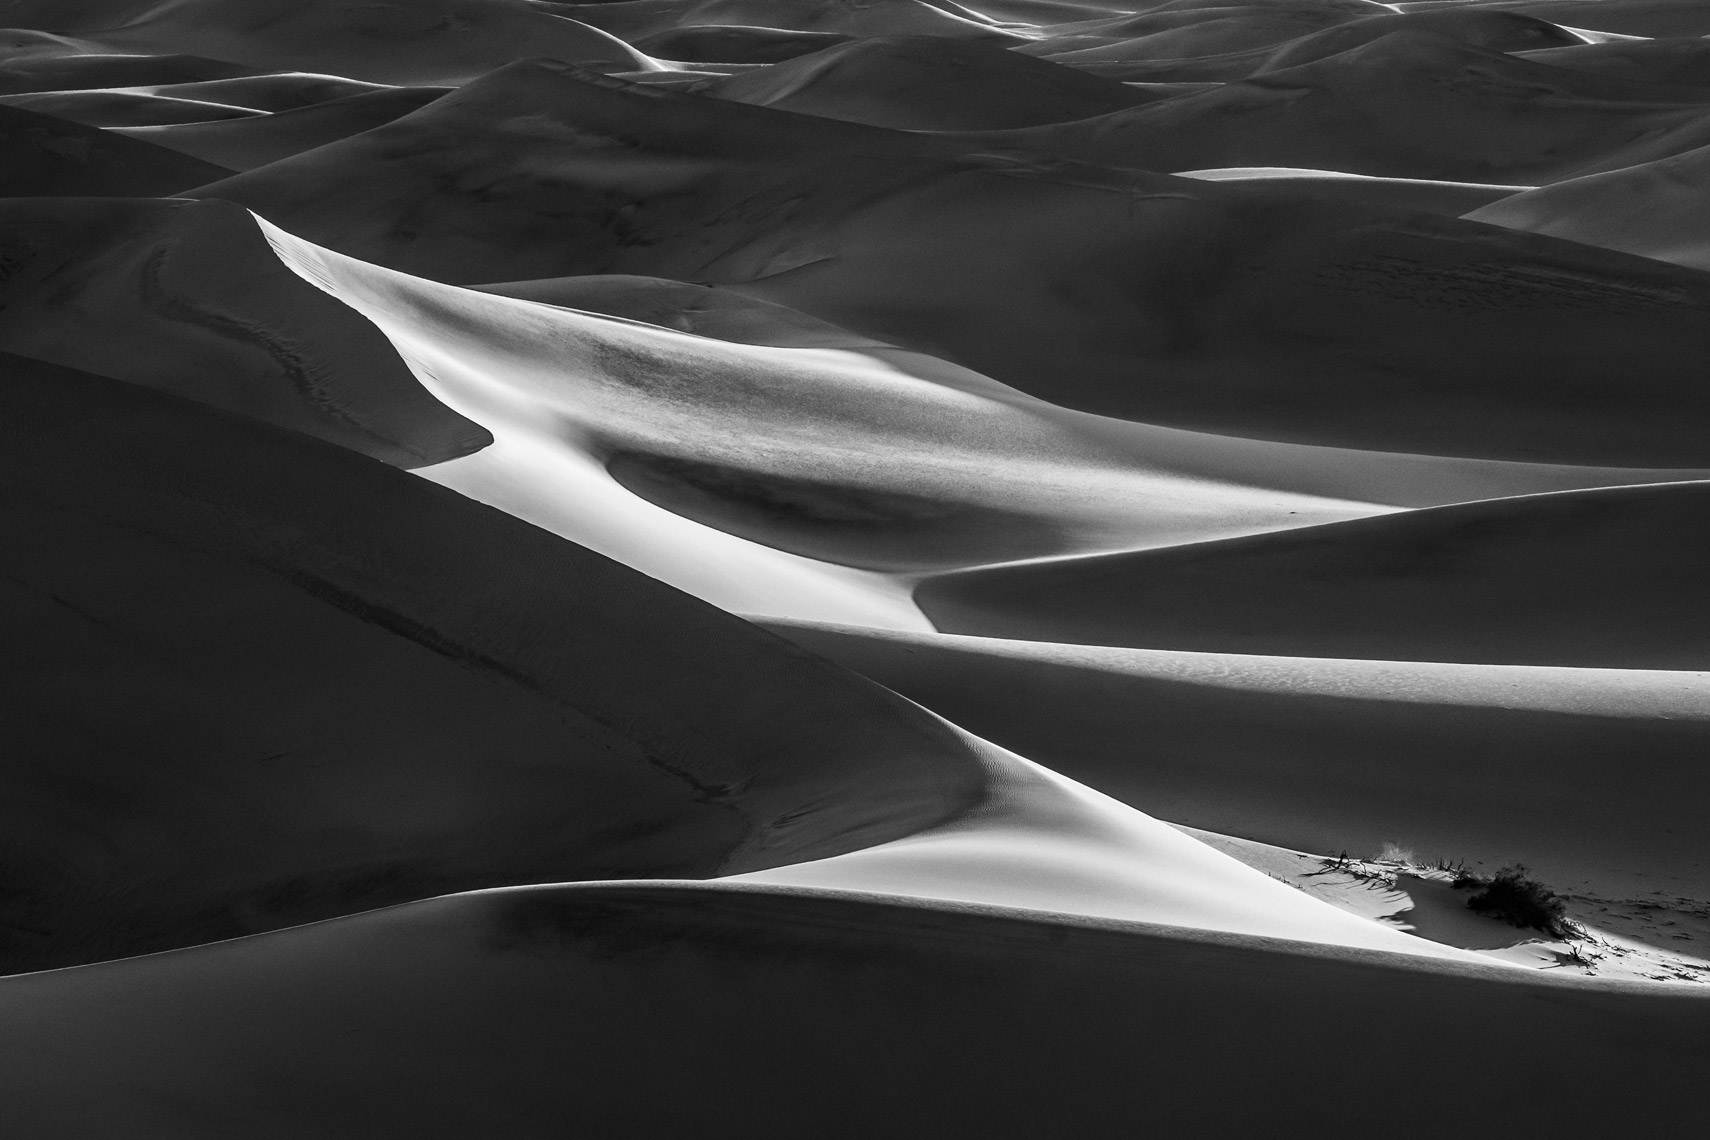 Sand_Dunes_Jussi_Grznar-0230093